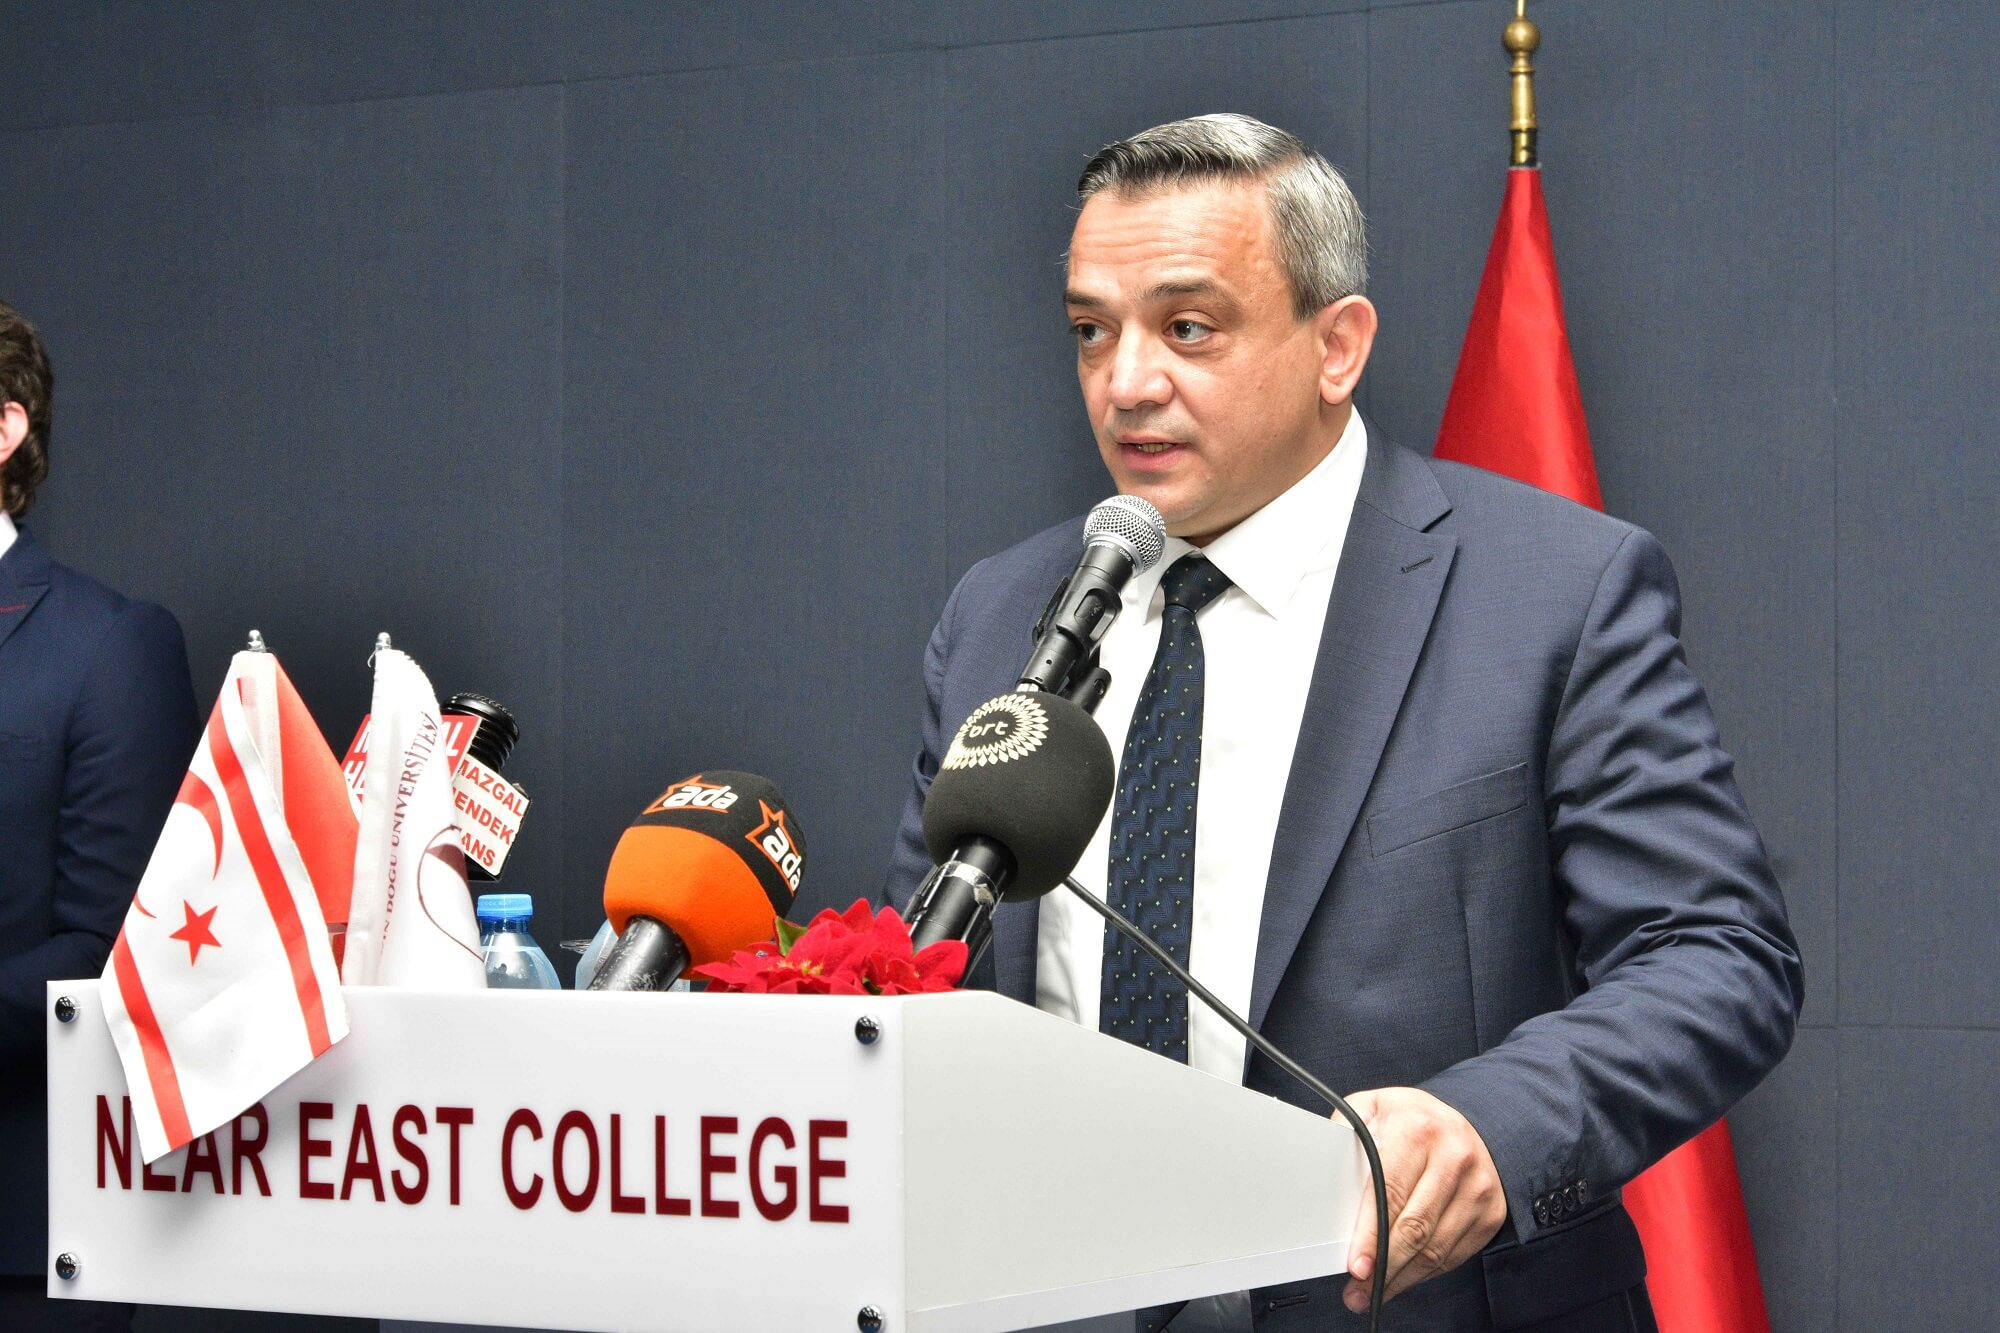 Official Opening of the Near East College Yeniboğaziçi Campus was held with the participation of President Ersin Tatar